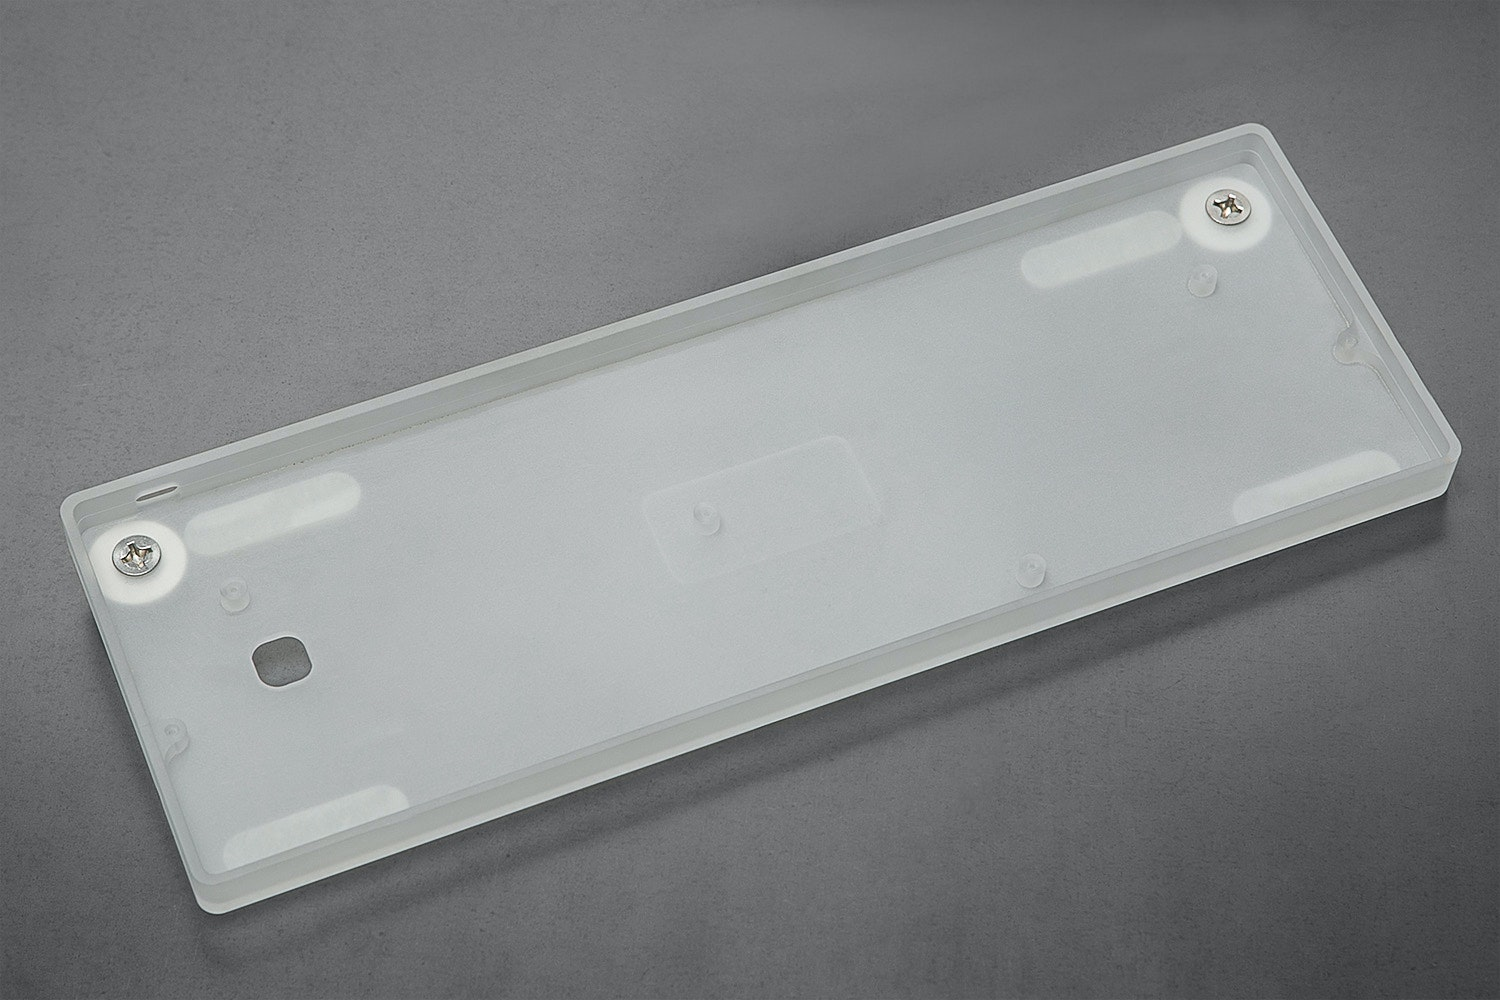 60% Lipless Acrylic Case